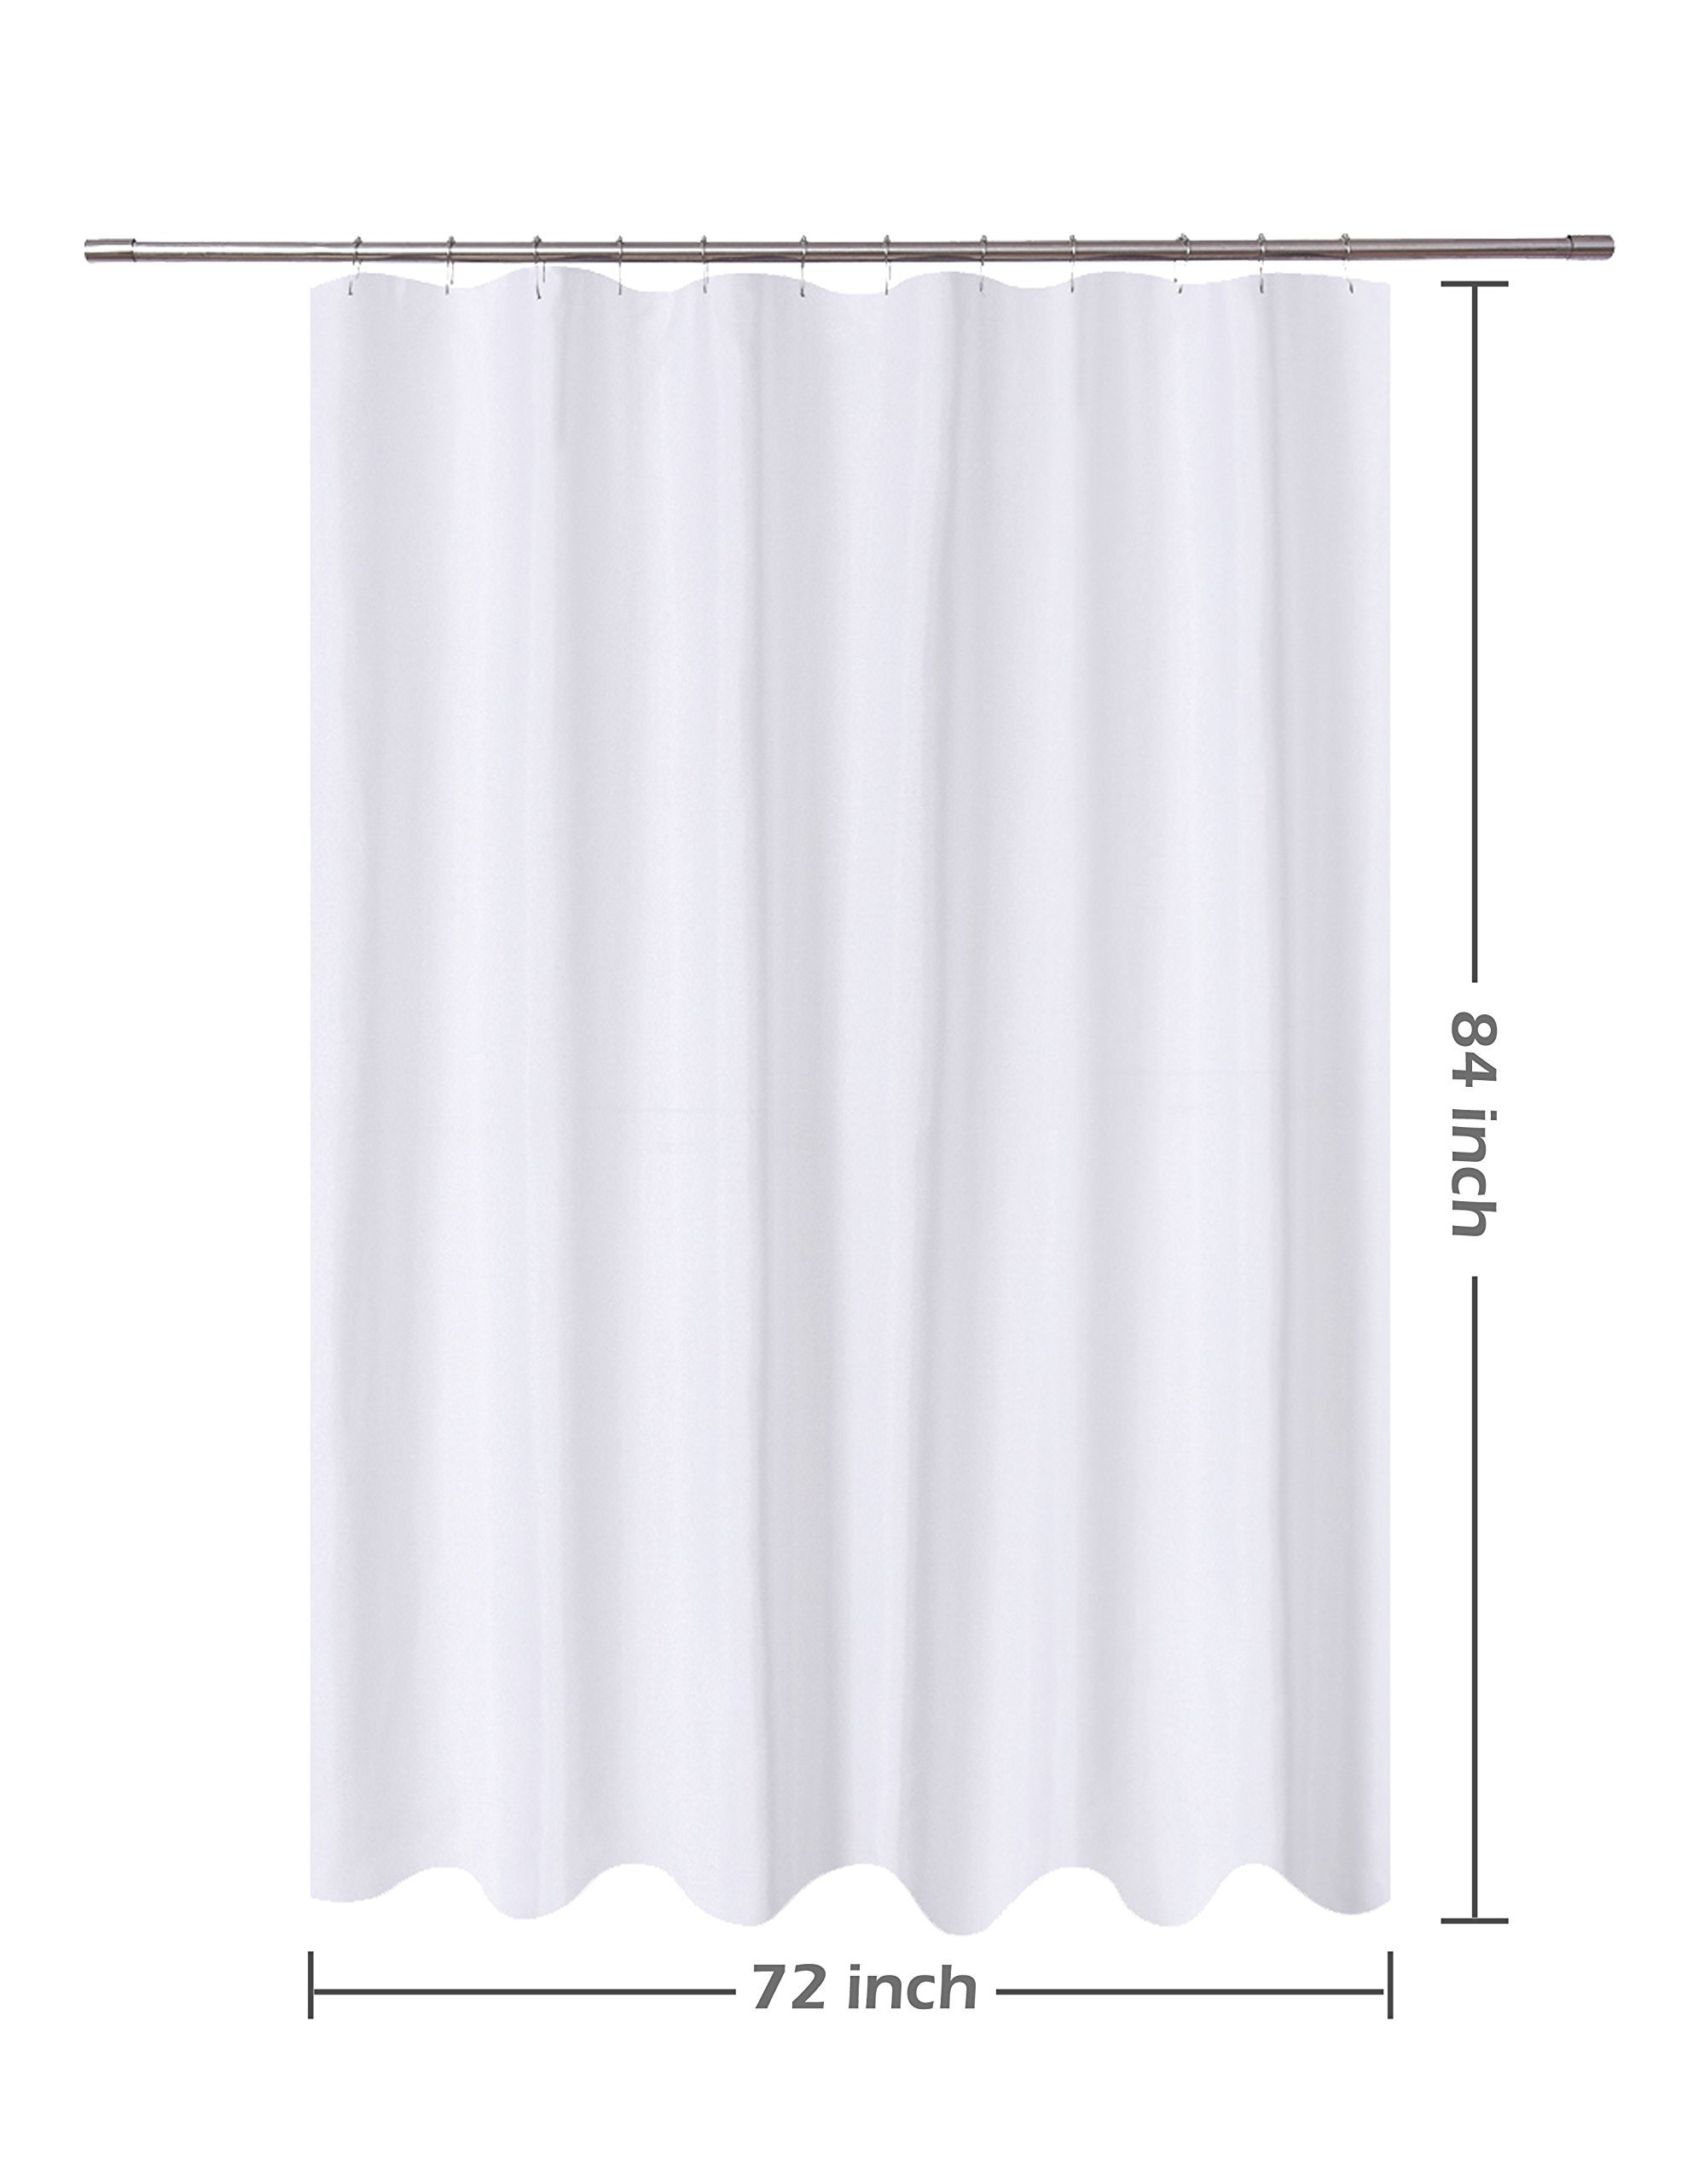 n y home fabric shower curtain liner extra long 72 x 84 inches with 2 bottom magnets hotel quality washable water repellent white spa bathroom